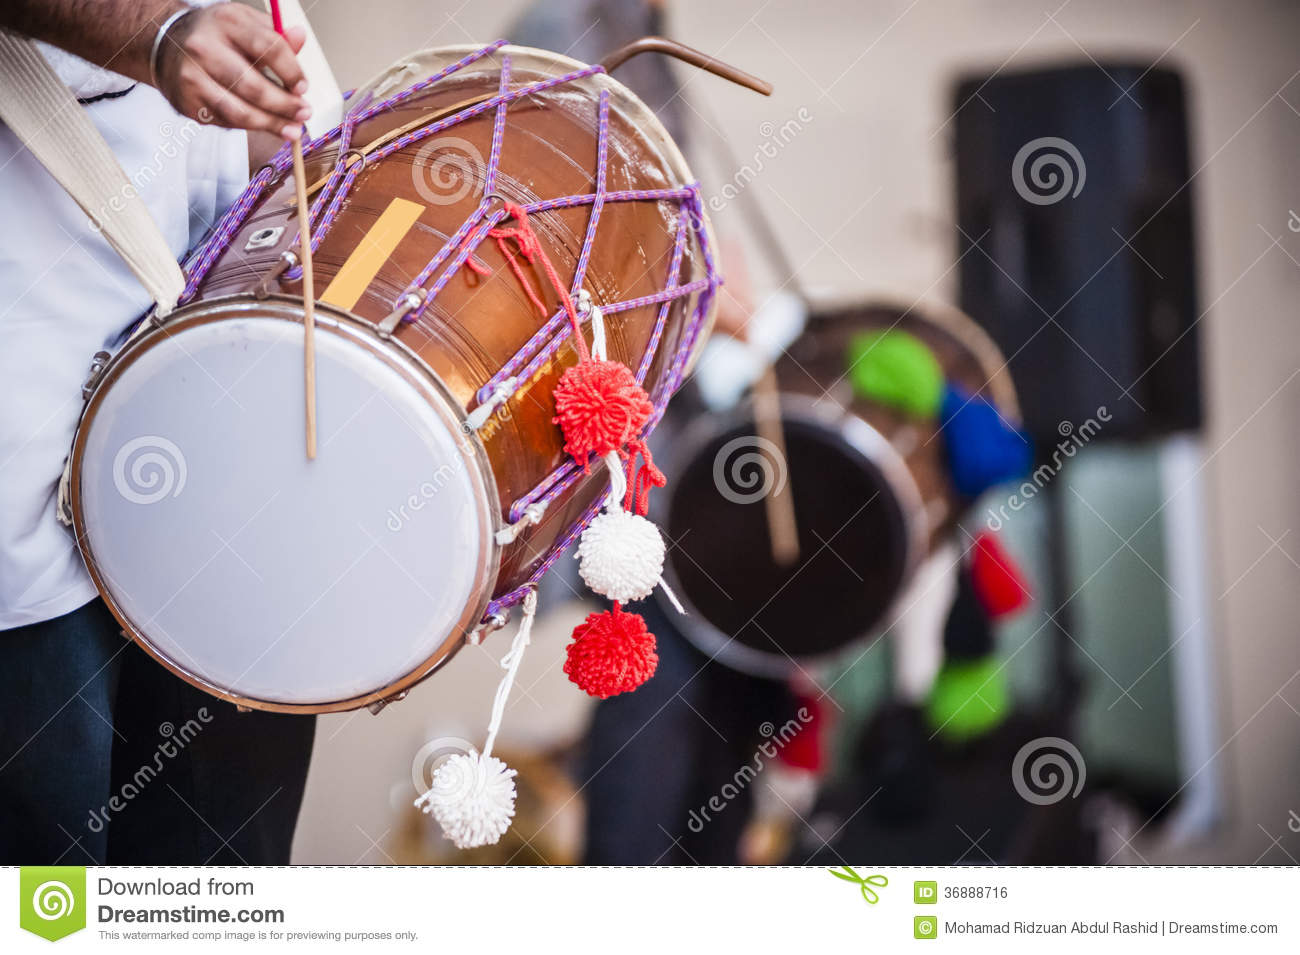 Dhol stock photo  Image of part, body, sound, india, double